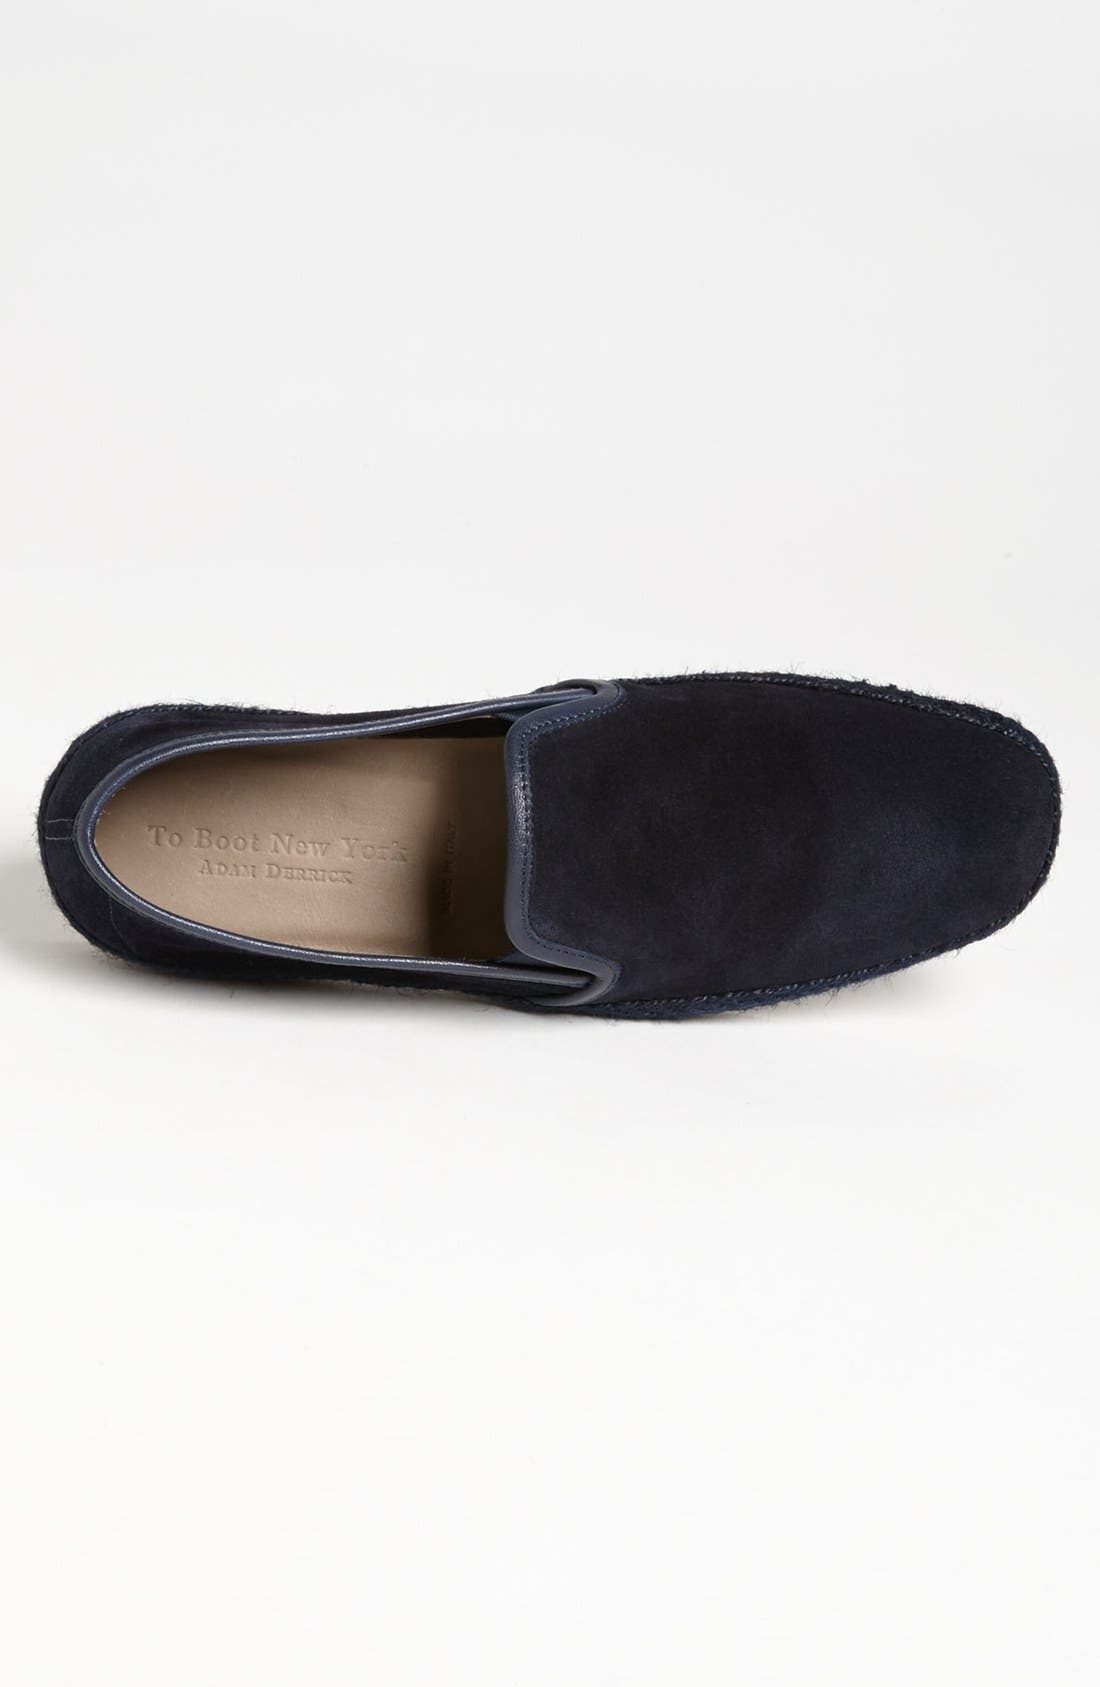 Alternate Image 3  - To Boot New York 'Quentin' Loafer